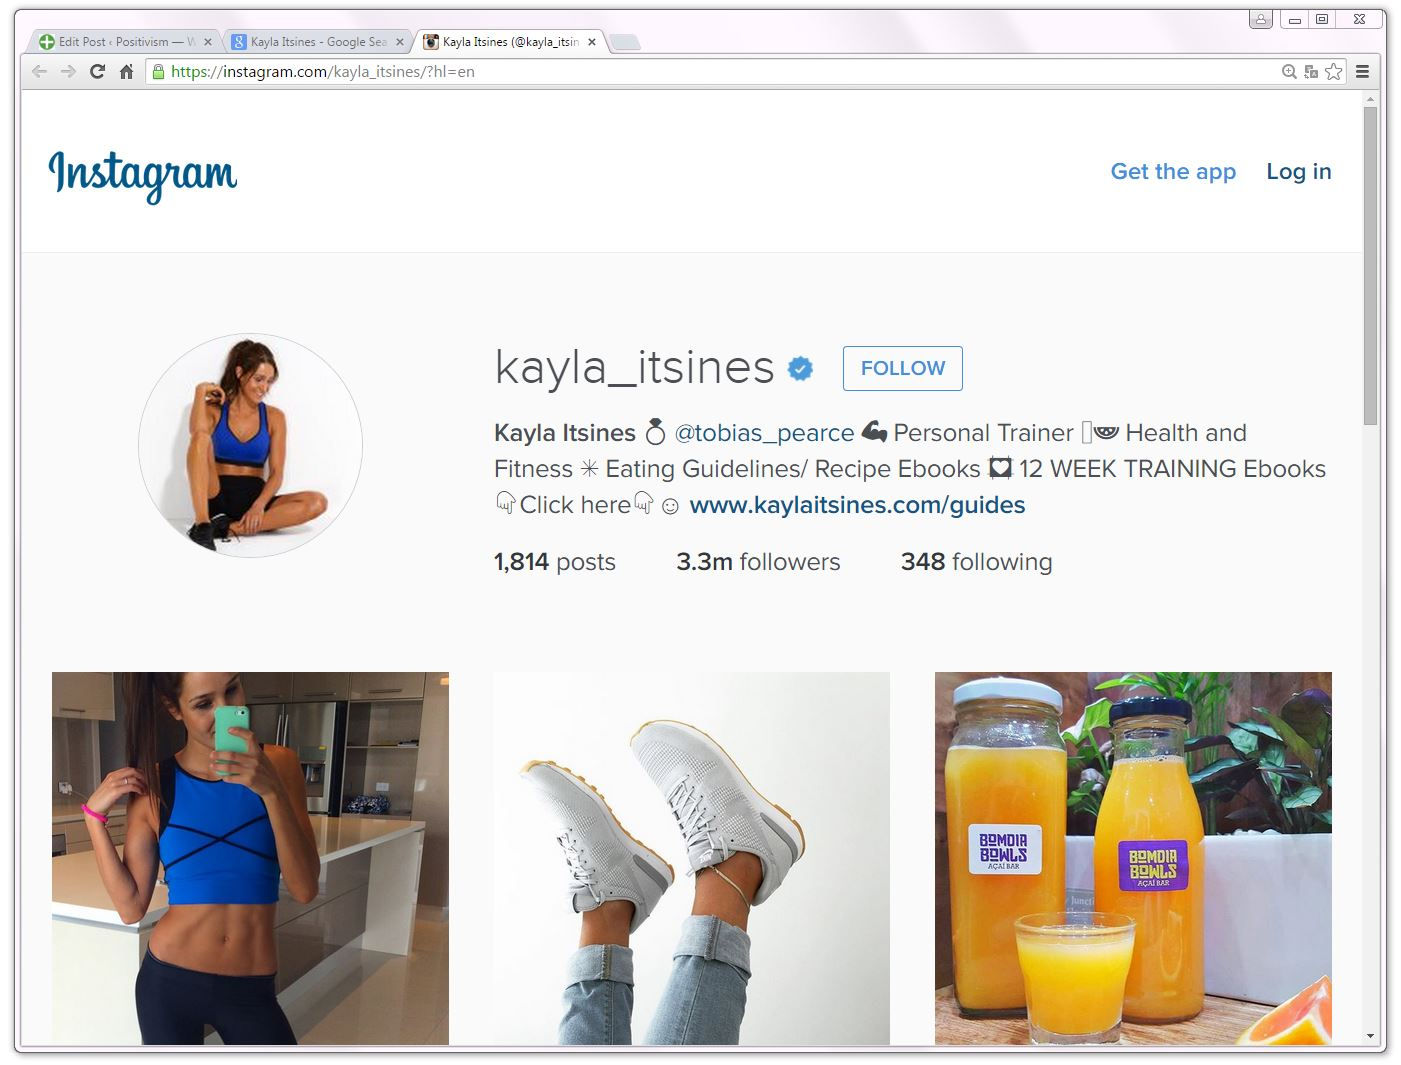 kayla_itsines, Verified, Instagram account. 1,814 posts, 3.3m followers and no Wikipedia article